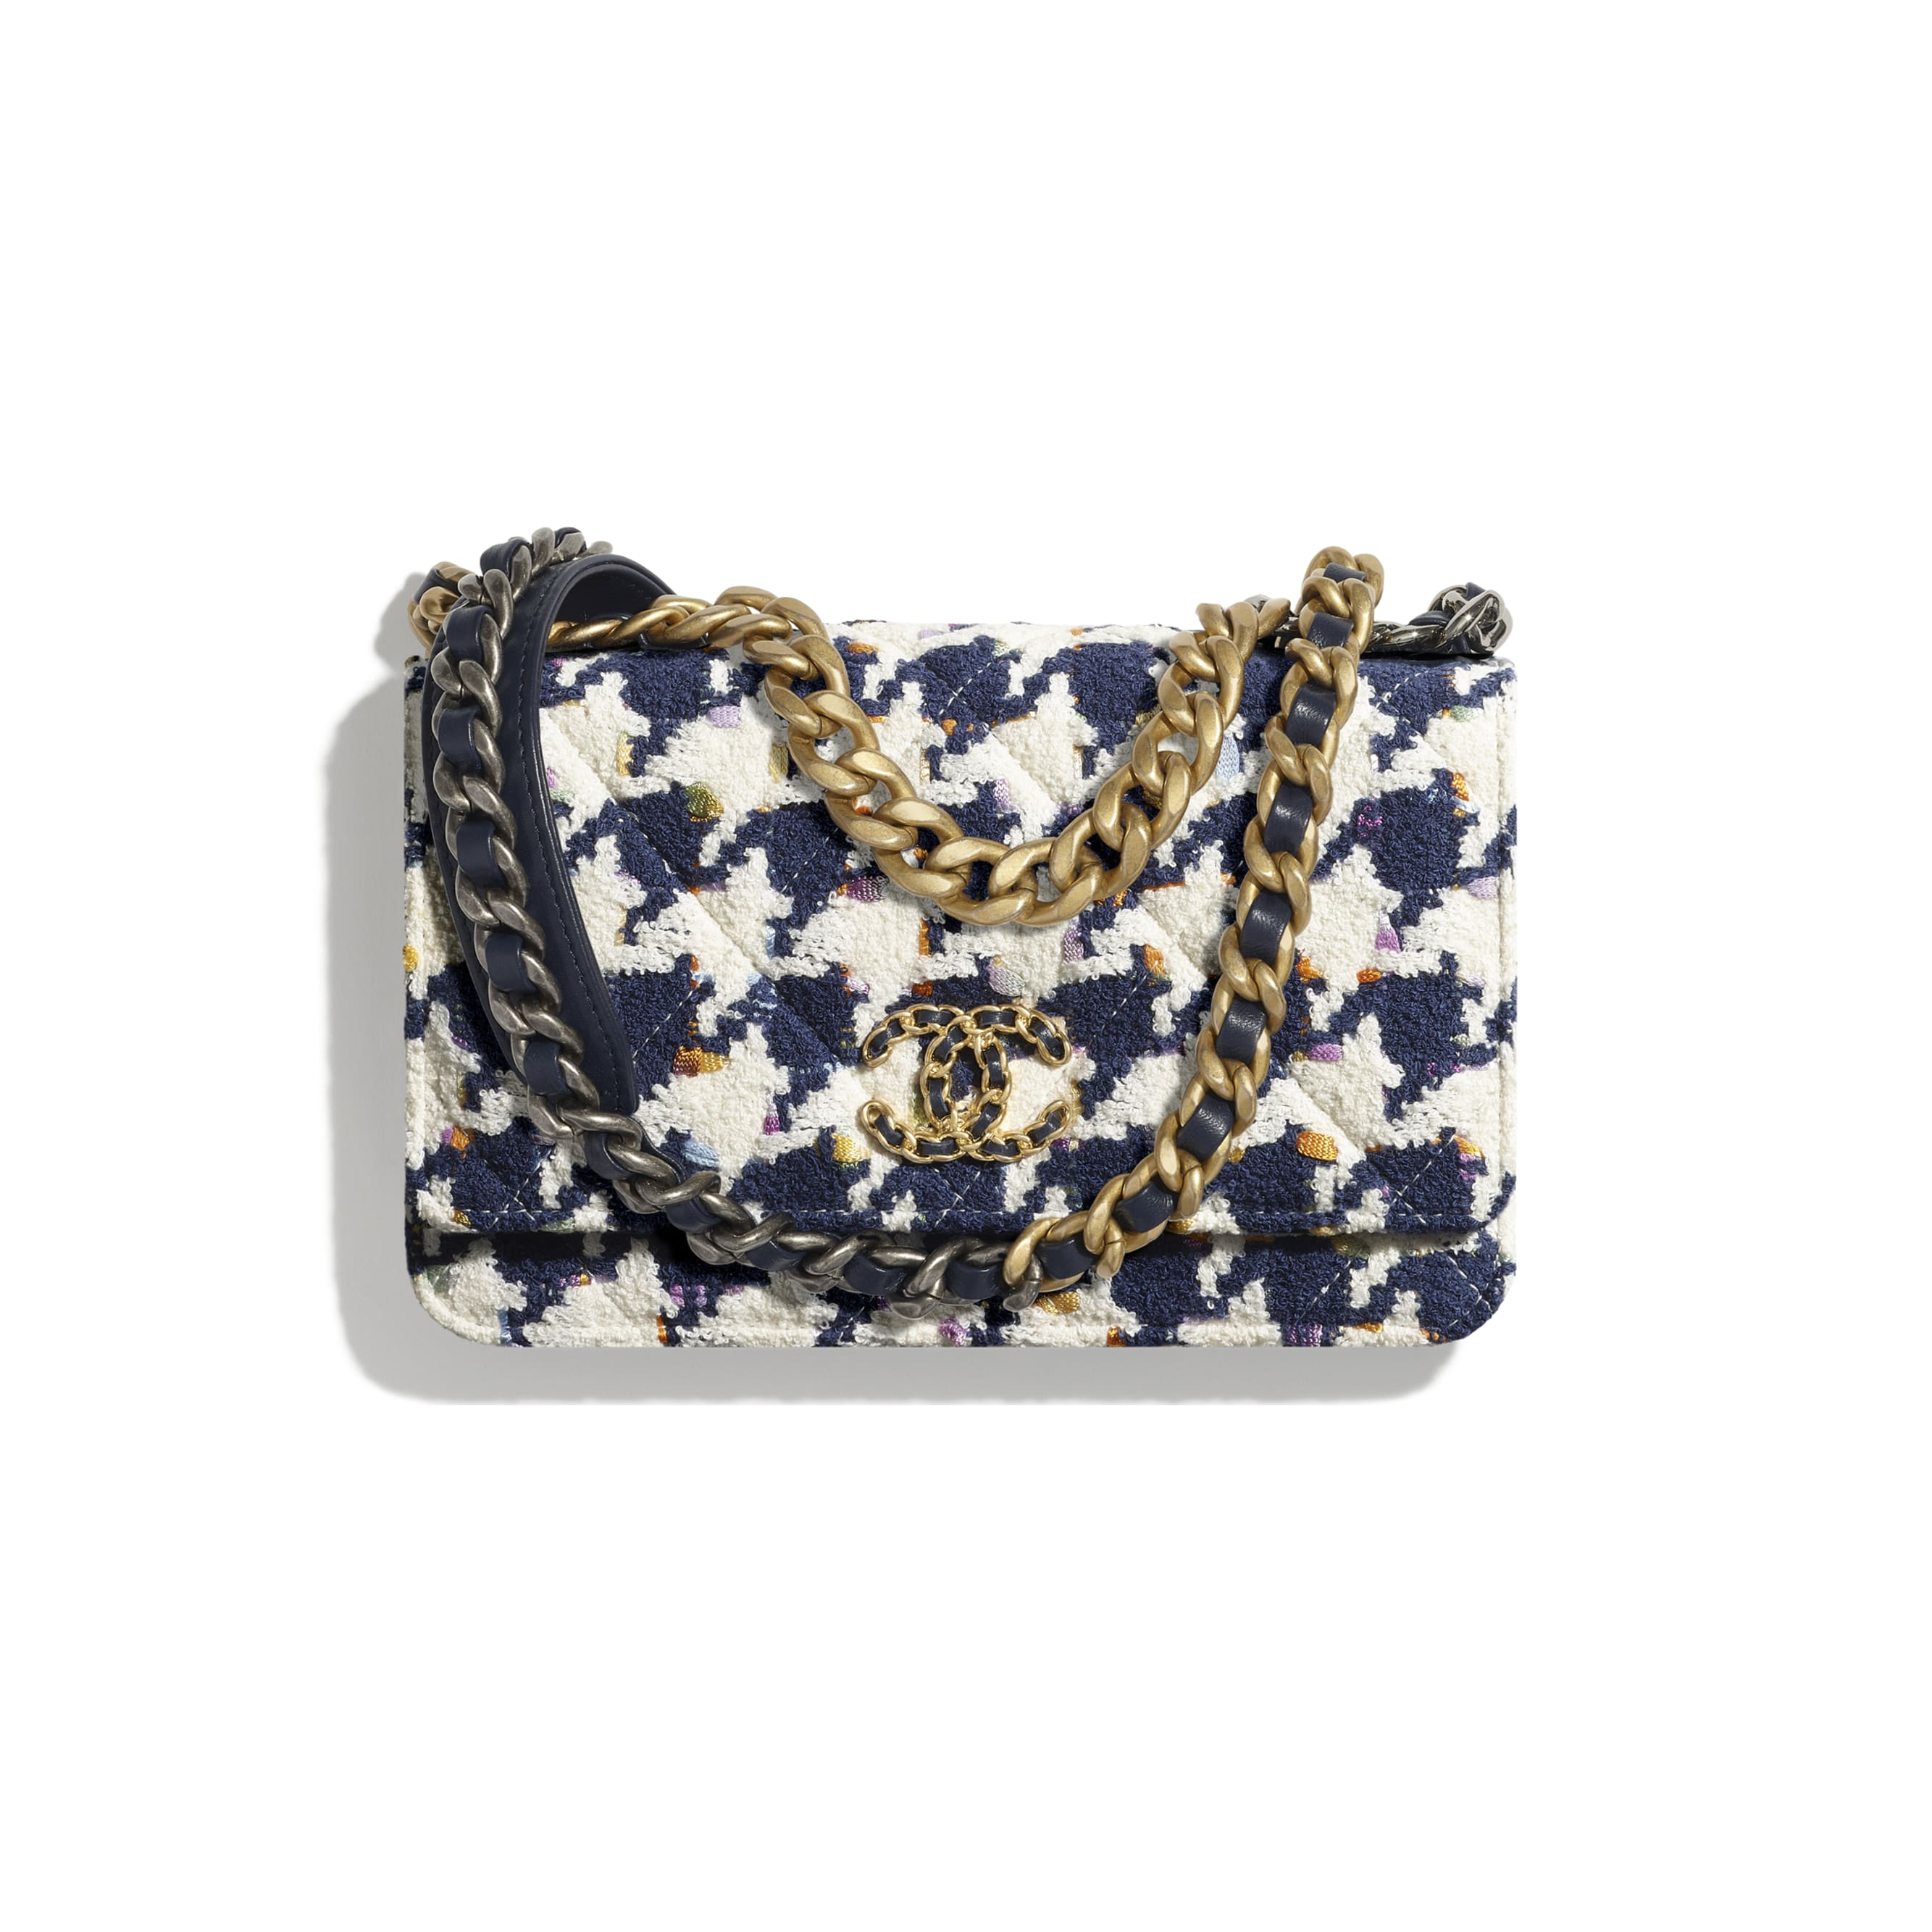 CHANEL 19 Wallet on Chain - Ecru, Navy Blue & Multicolour - Tweed, Gold-Tone, Silver-Tone & Ruthenium-Finish Metal - CHANEL - Default view - see standard sized version